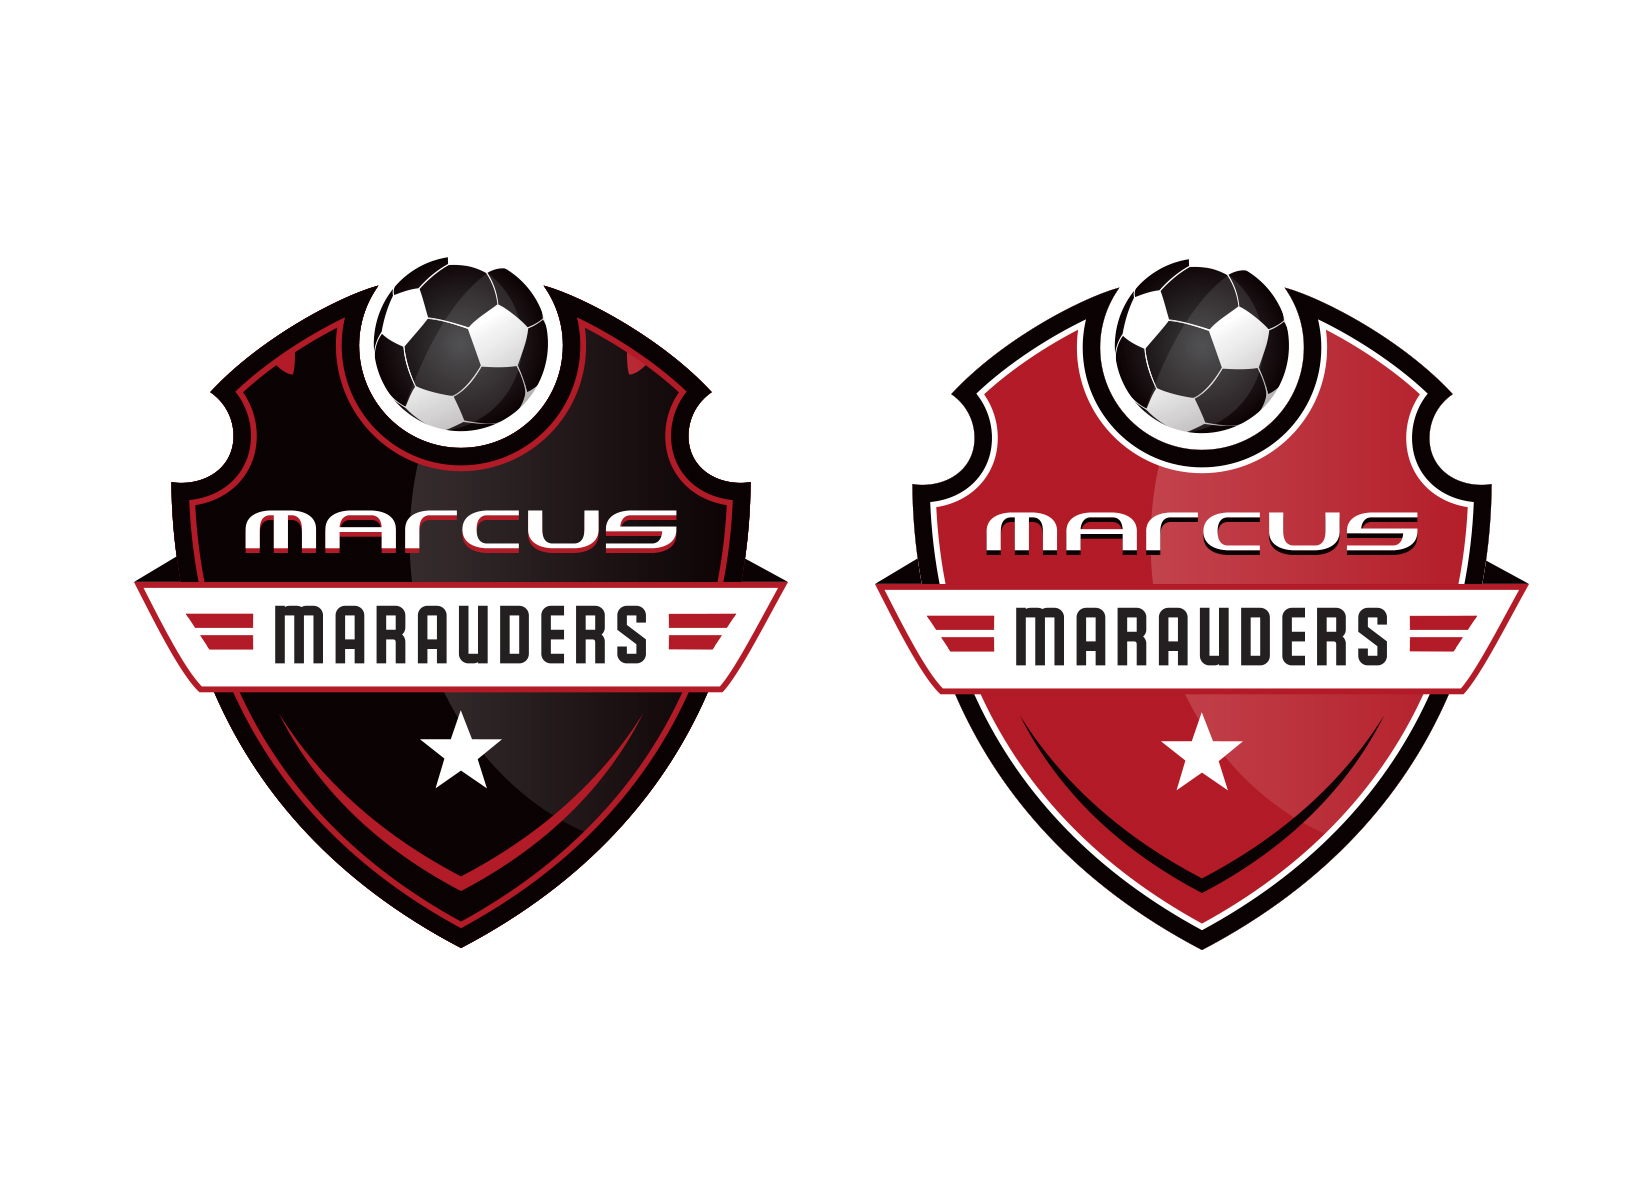 custom-soccer-logo-design-by-jordan-fretz-for-marauders-soccer-1.jpg